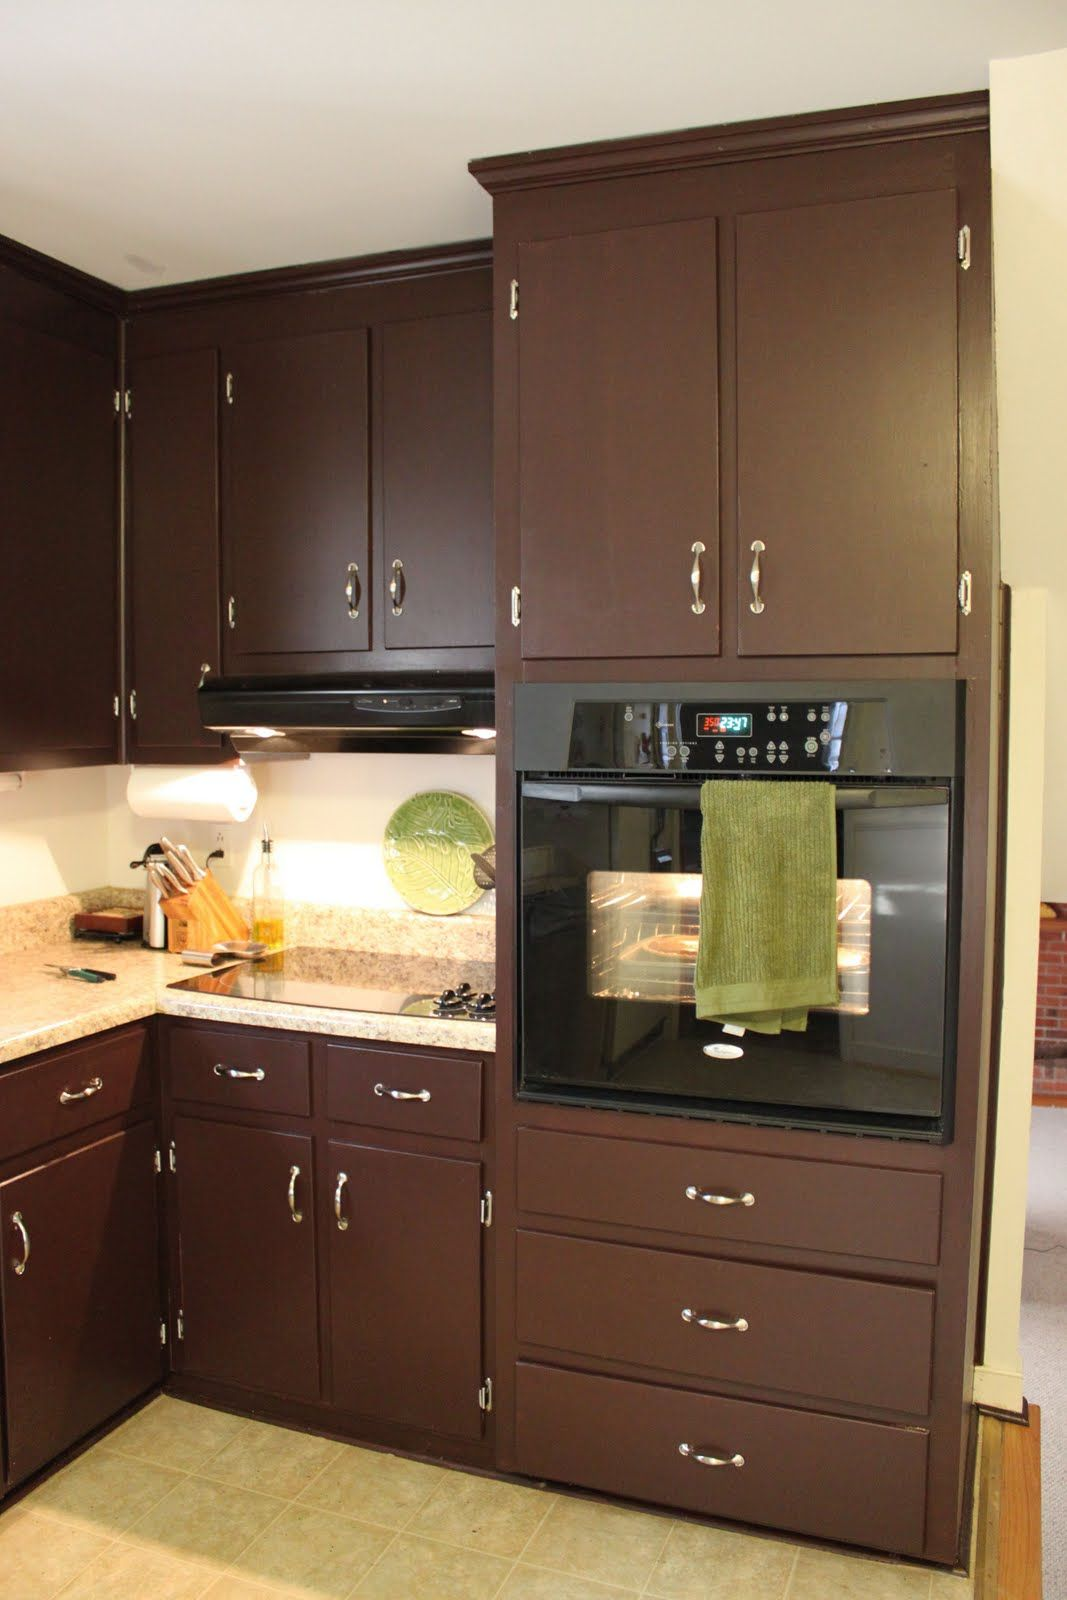 superior Painting Kitchen Cabinets Dark Brown #5: brown painted kitchen cabinets u0026 silver hardware .. looks like our floor in  this photo